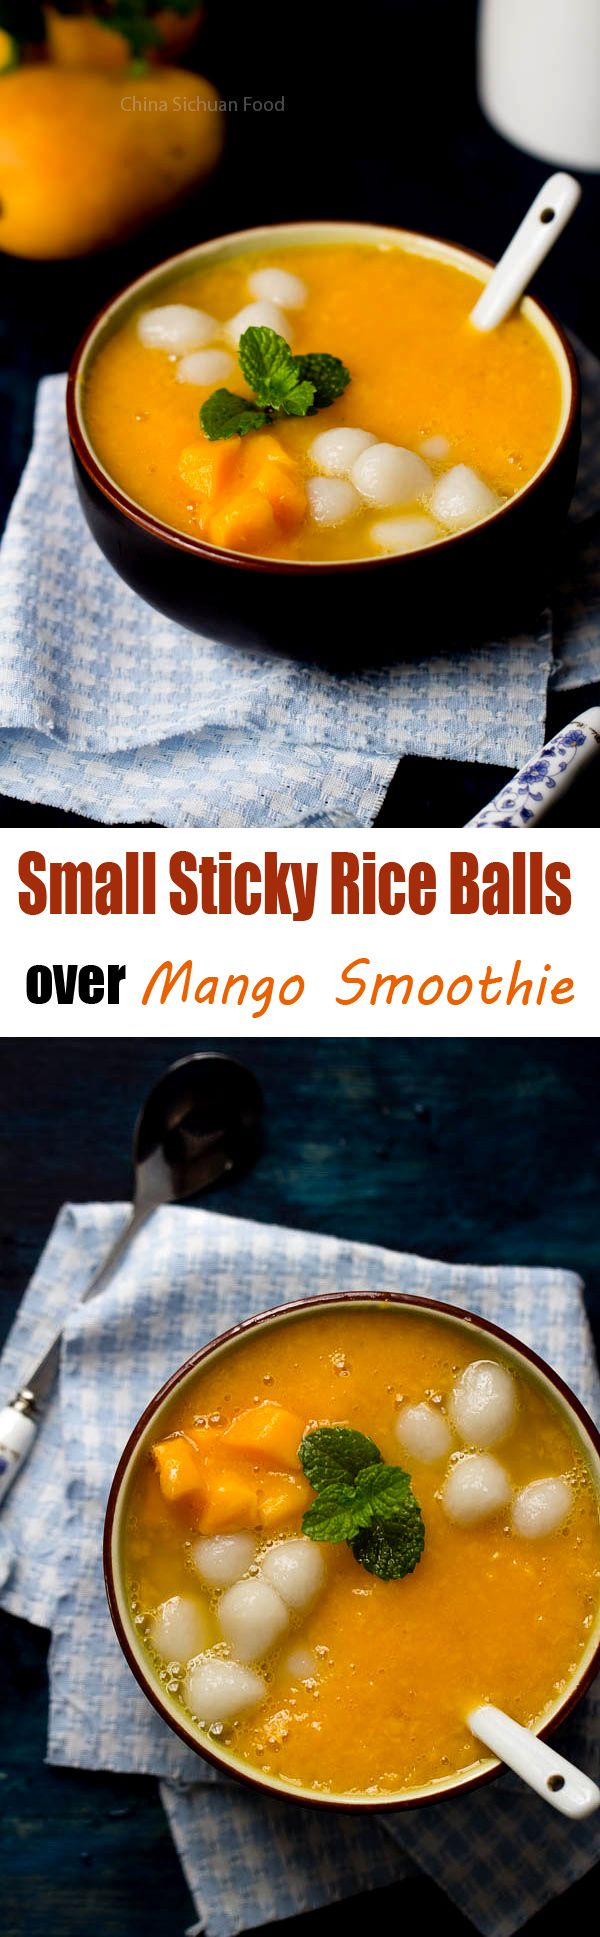 Small Sticky Rice Balls over Mango Smoothie | ChinaSichuanFood.com